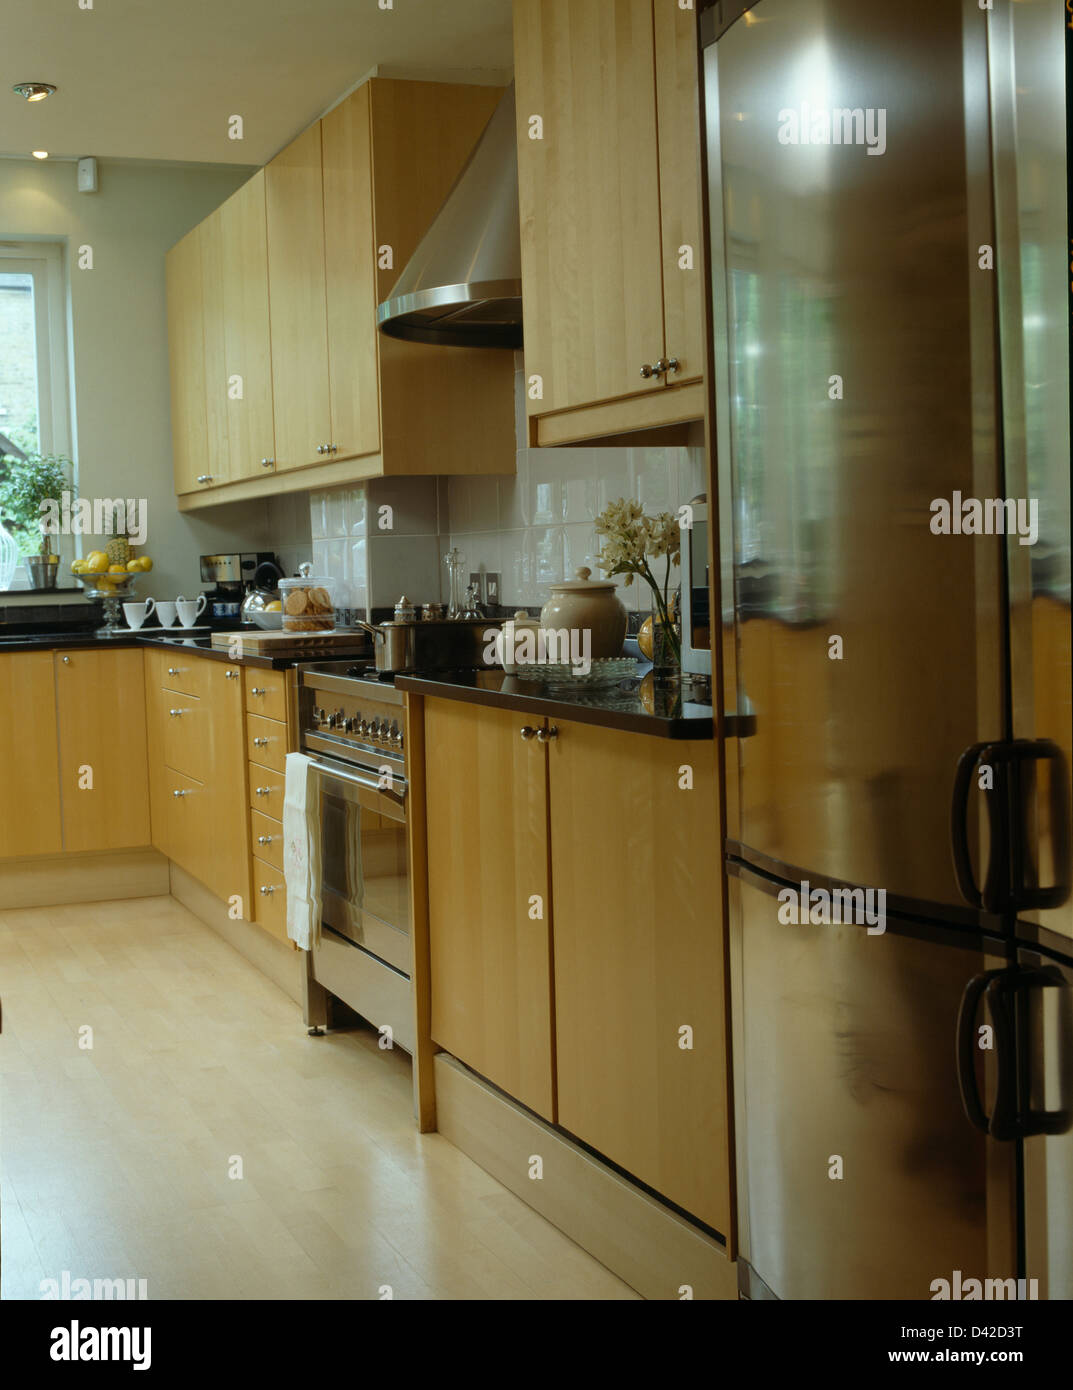 Stainless Steel Fridge Freezer In Modern Kitchen With Range Oven And Pale  Wood Fitted Units